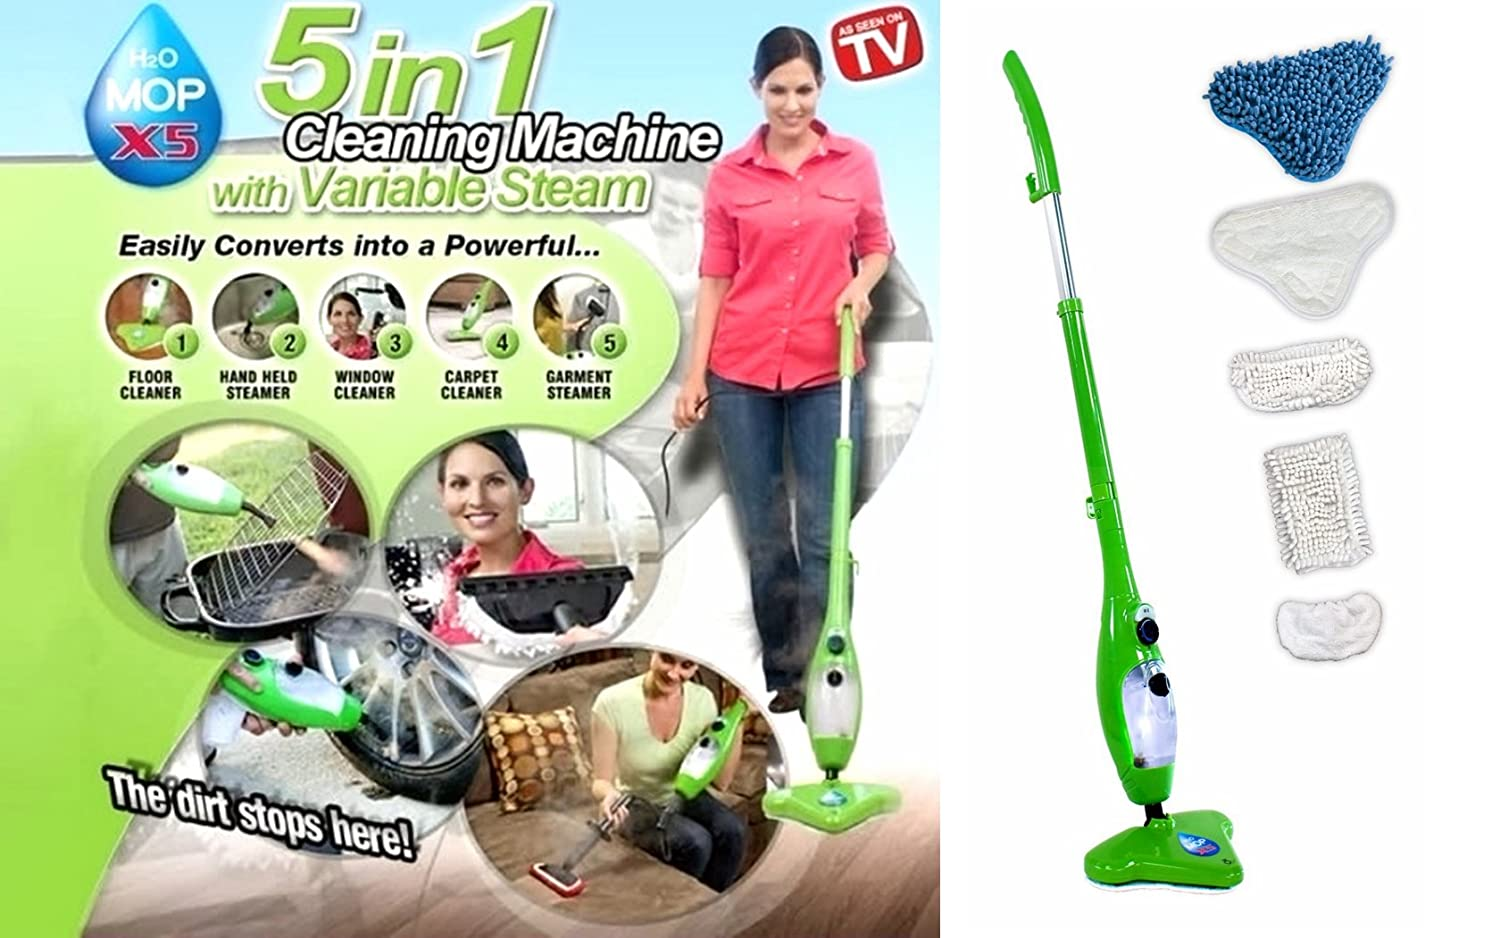 Upright and Handheld Steam Mop SKG KB-2012 - 6-in-1 Multi Function, 1500 Watt